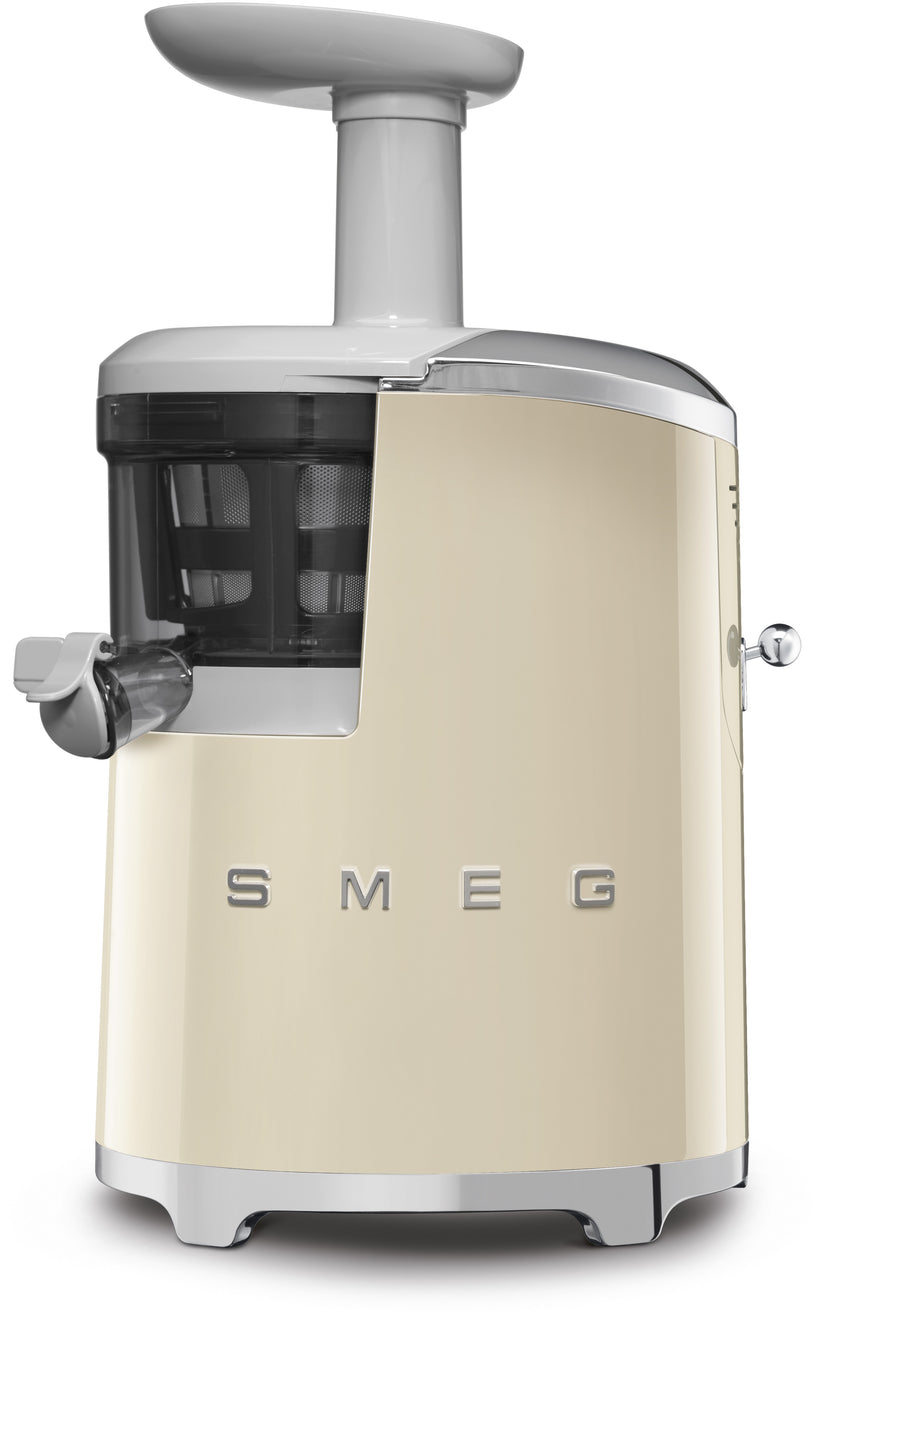 Smeg SJF01 50's Retro Style Aesthetic Slow Juicer Available in Cream